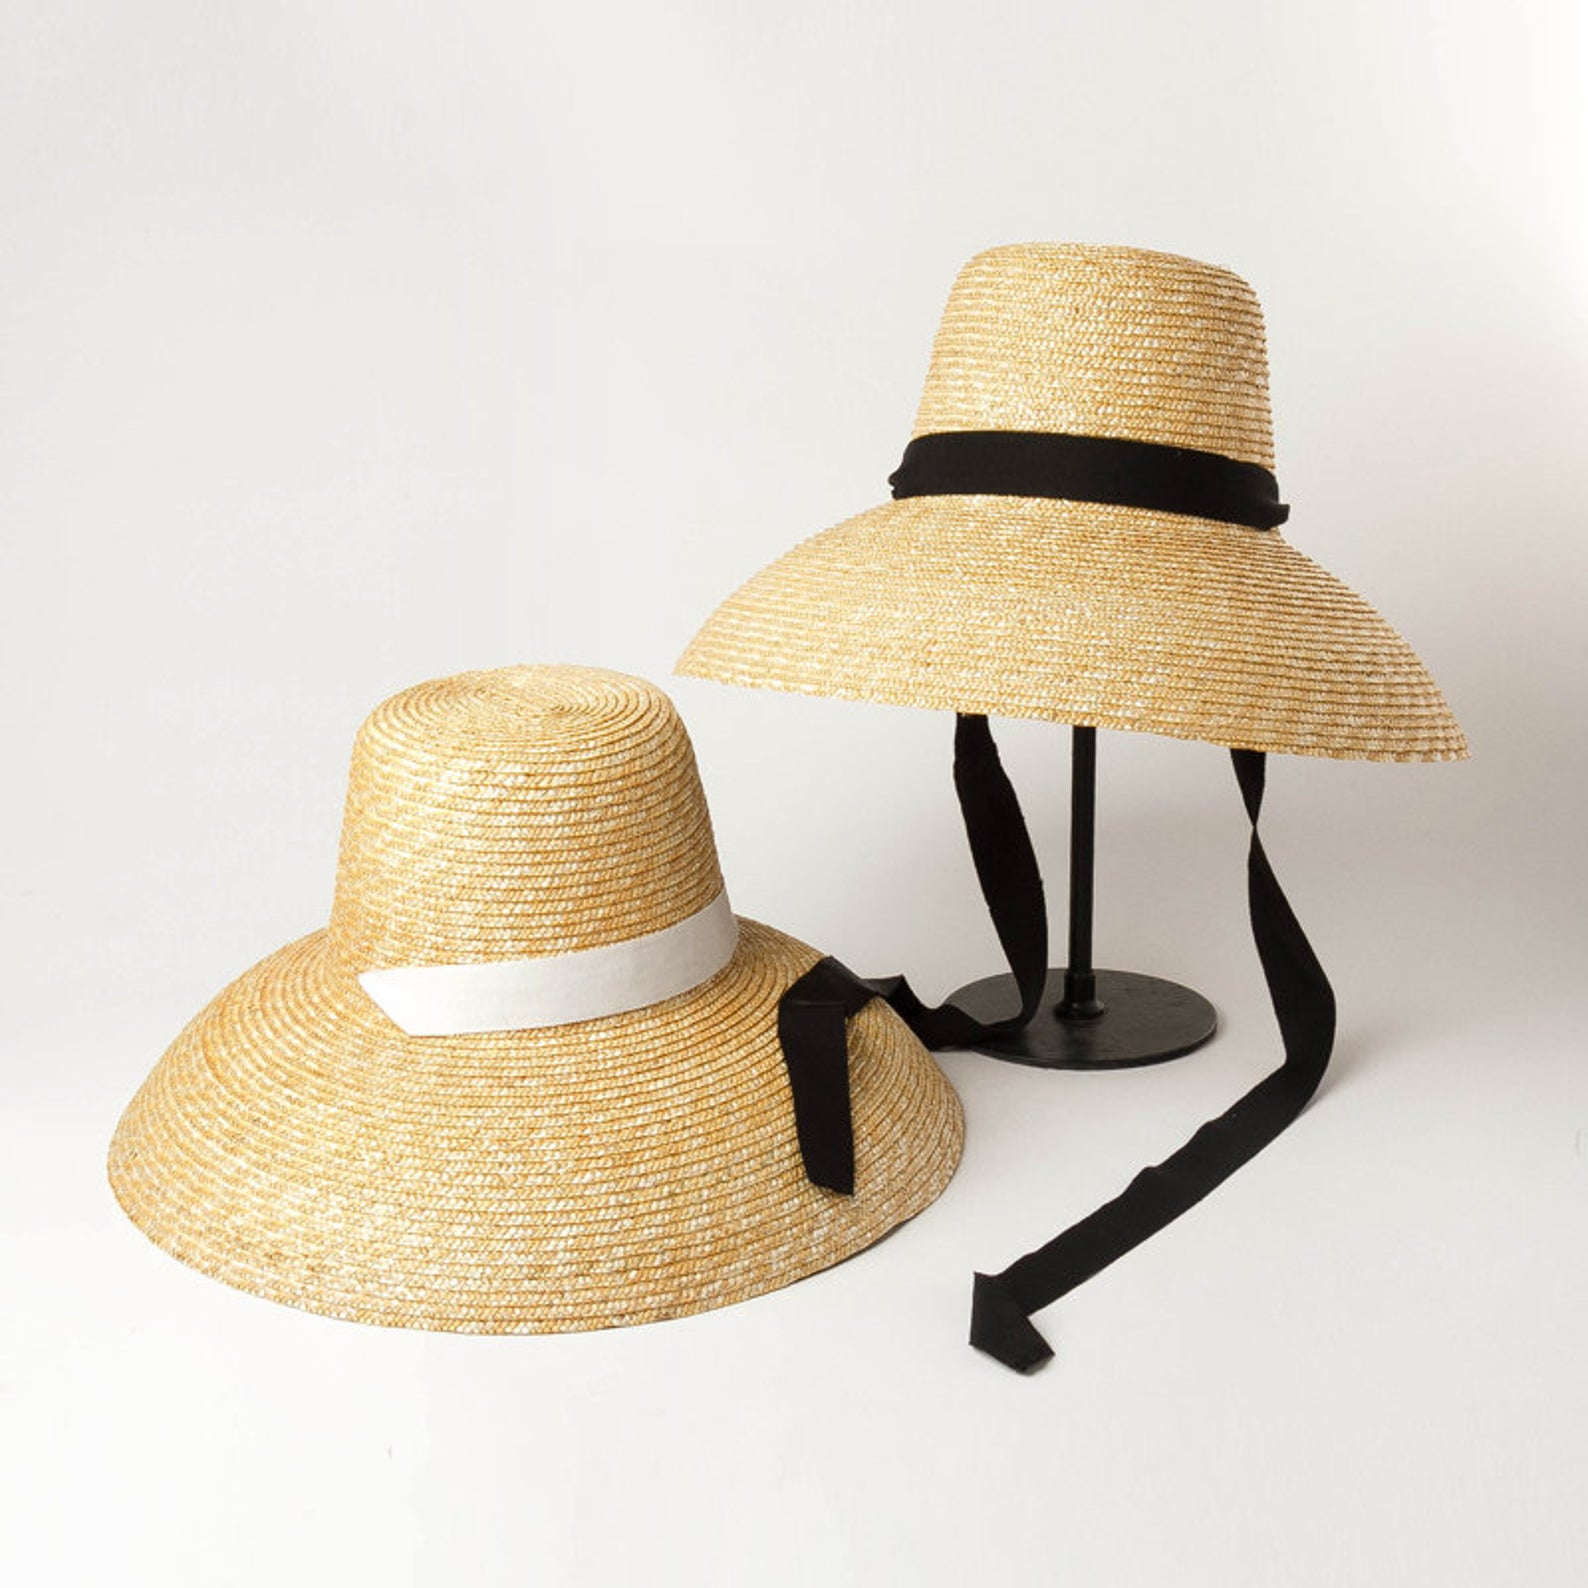 High flat top with large brim with binding straw hat fashion concave shape sun - resistant beach straw hat